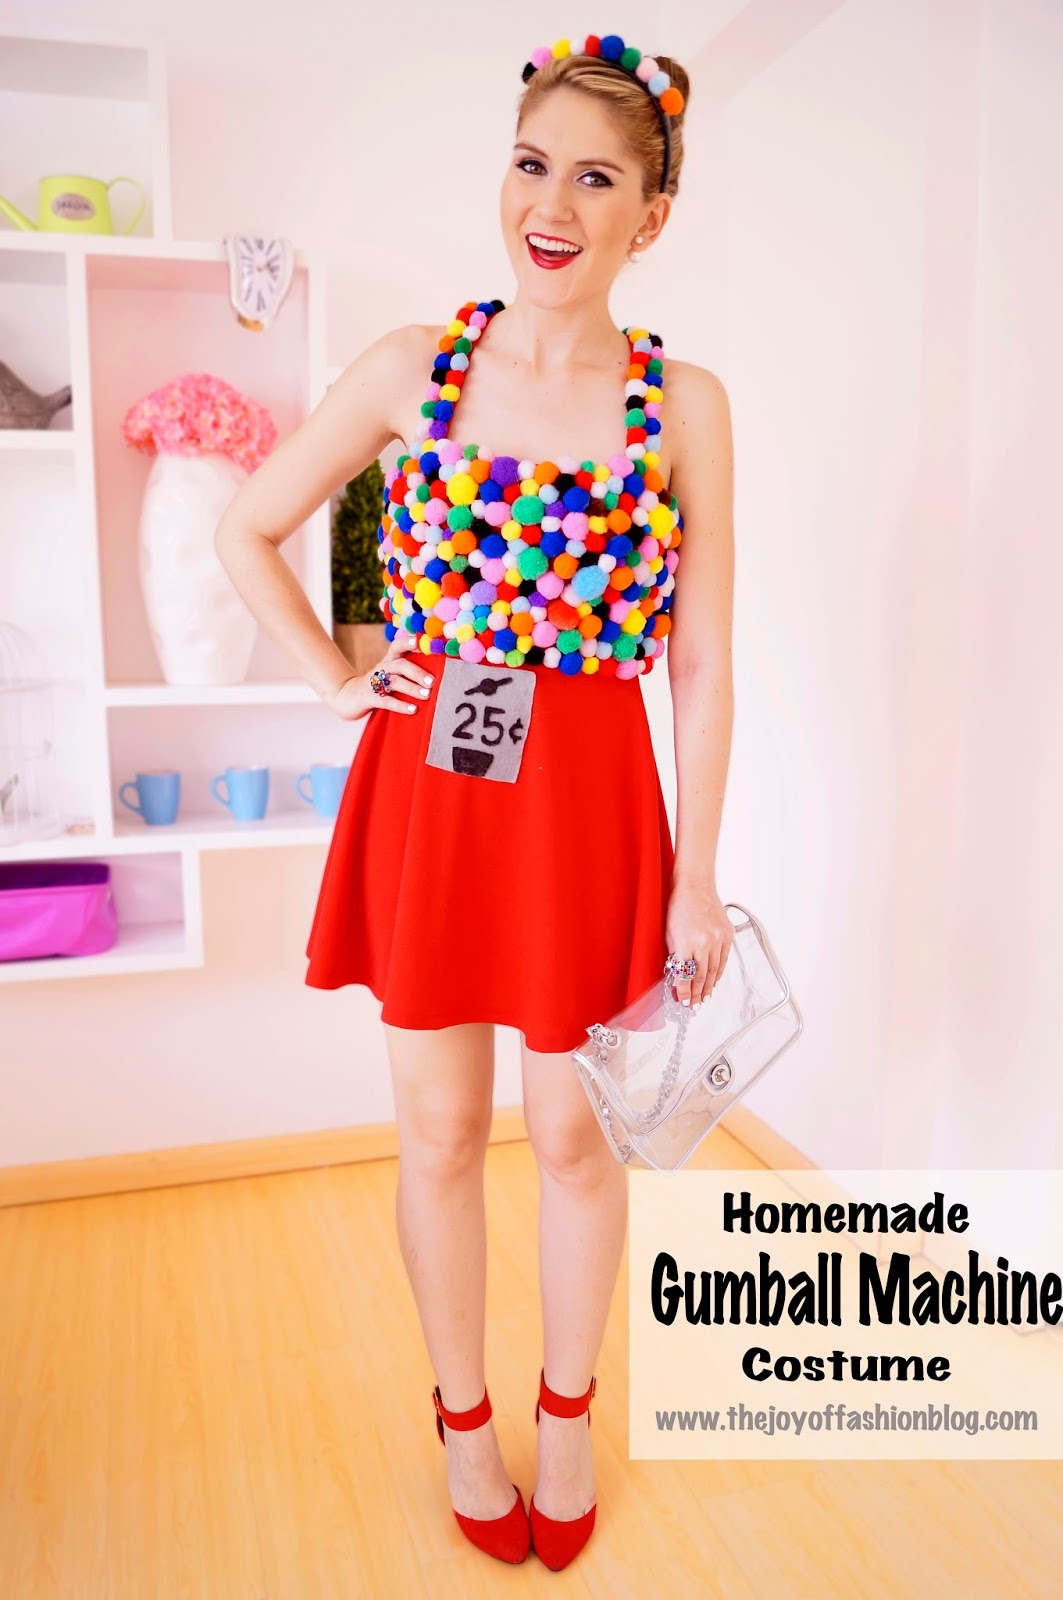 The joy of fashion halloween homemade gumball machine costume easy homemade gumball machine costume for halloween click through for full tutorial solutioingenieria